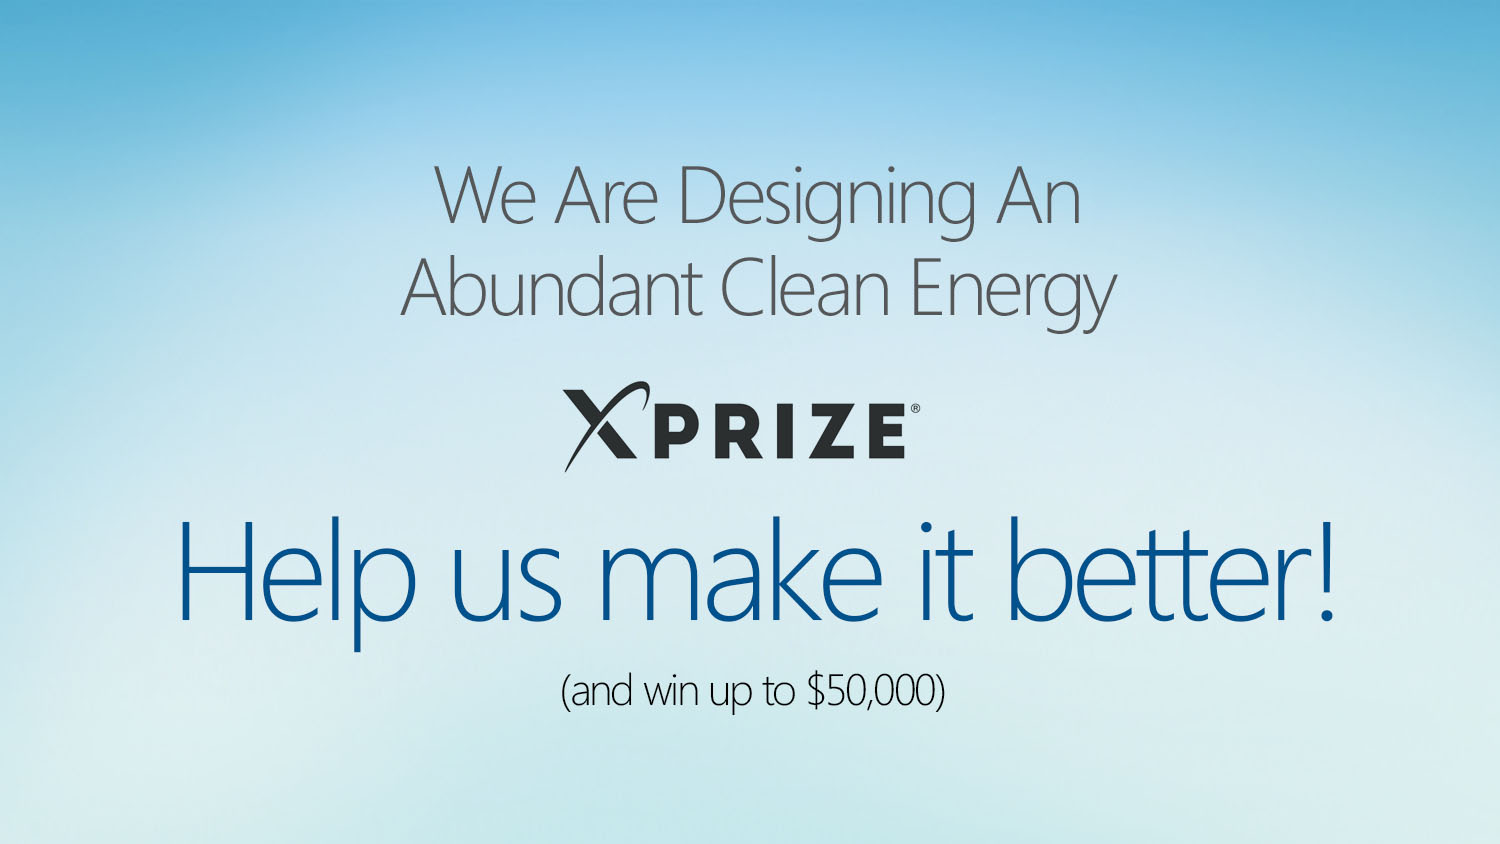 XPrize Call to Action